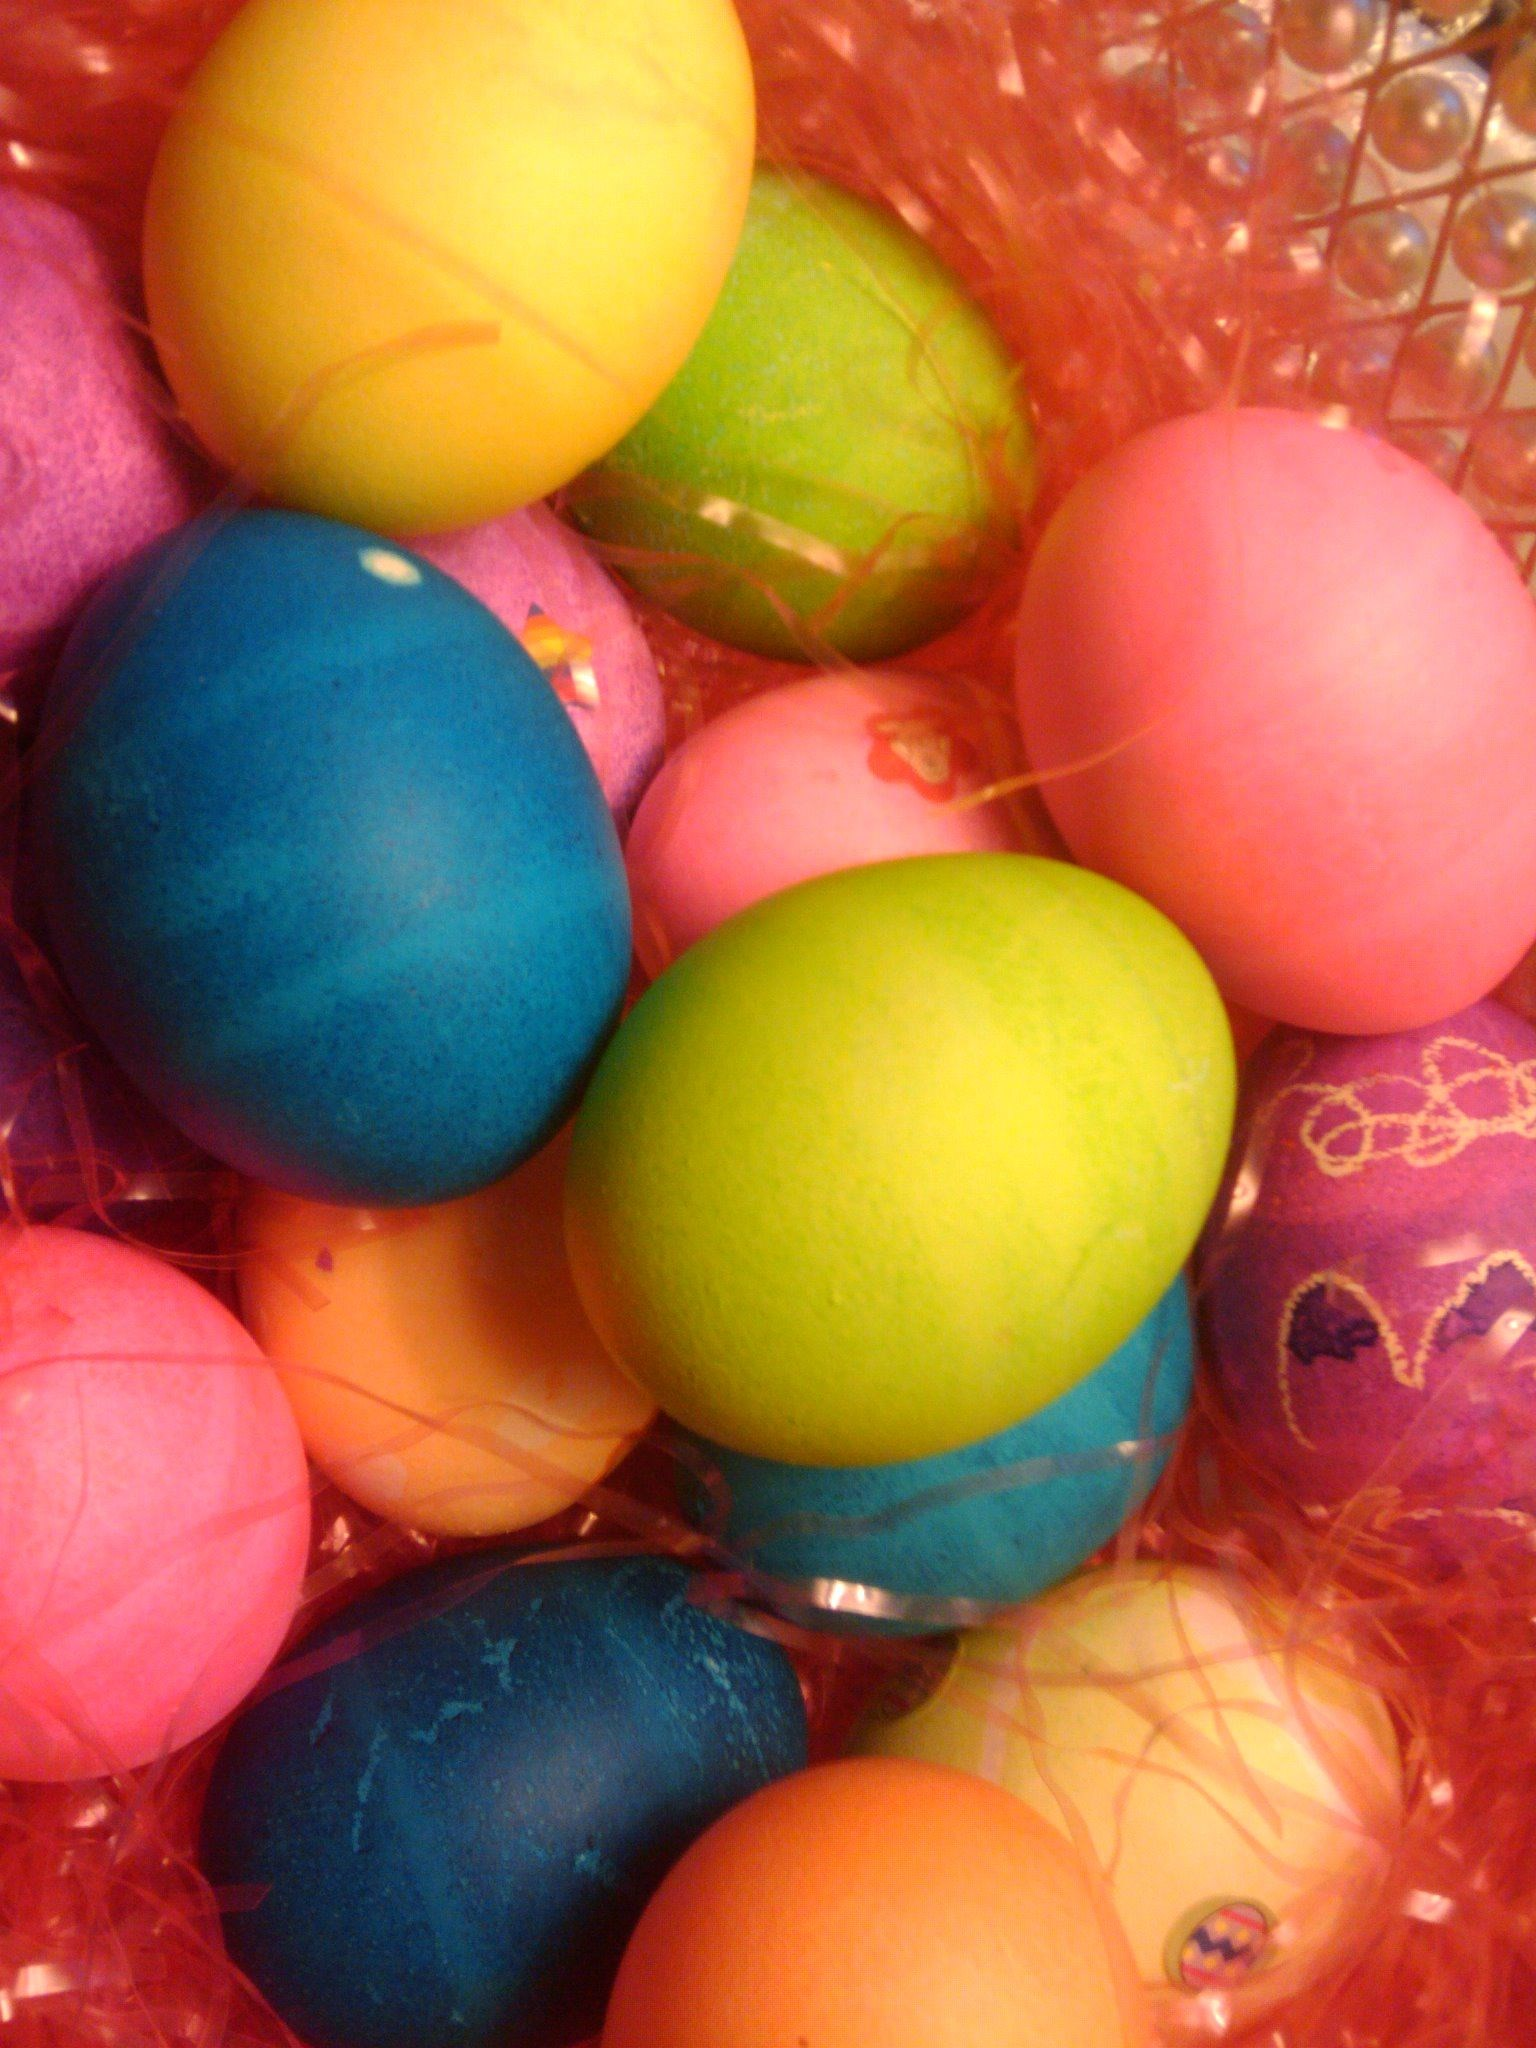 Our Easter Eggs We Did Last Easter 04/2011